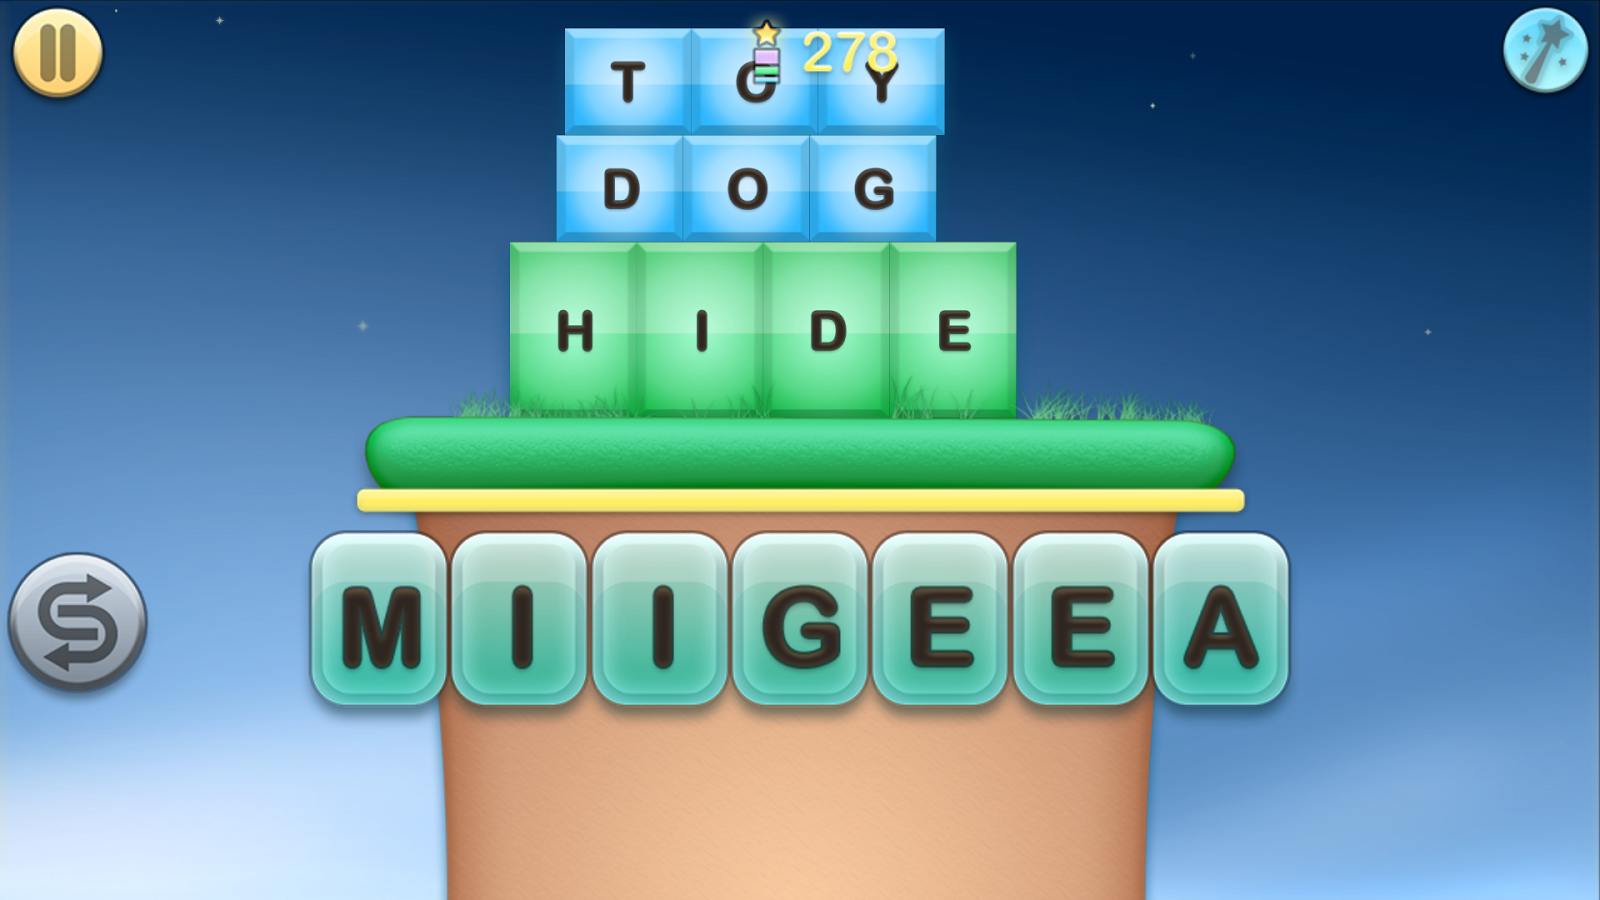 jumbline 2 word game puzzle android apps on google play